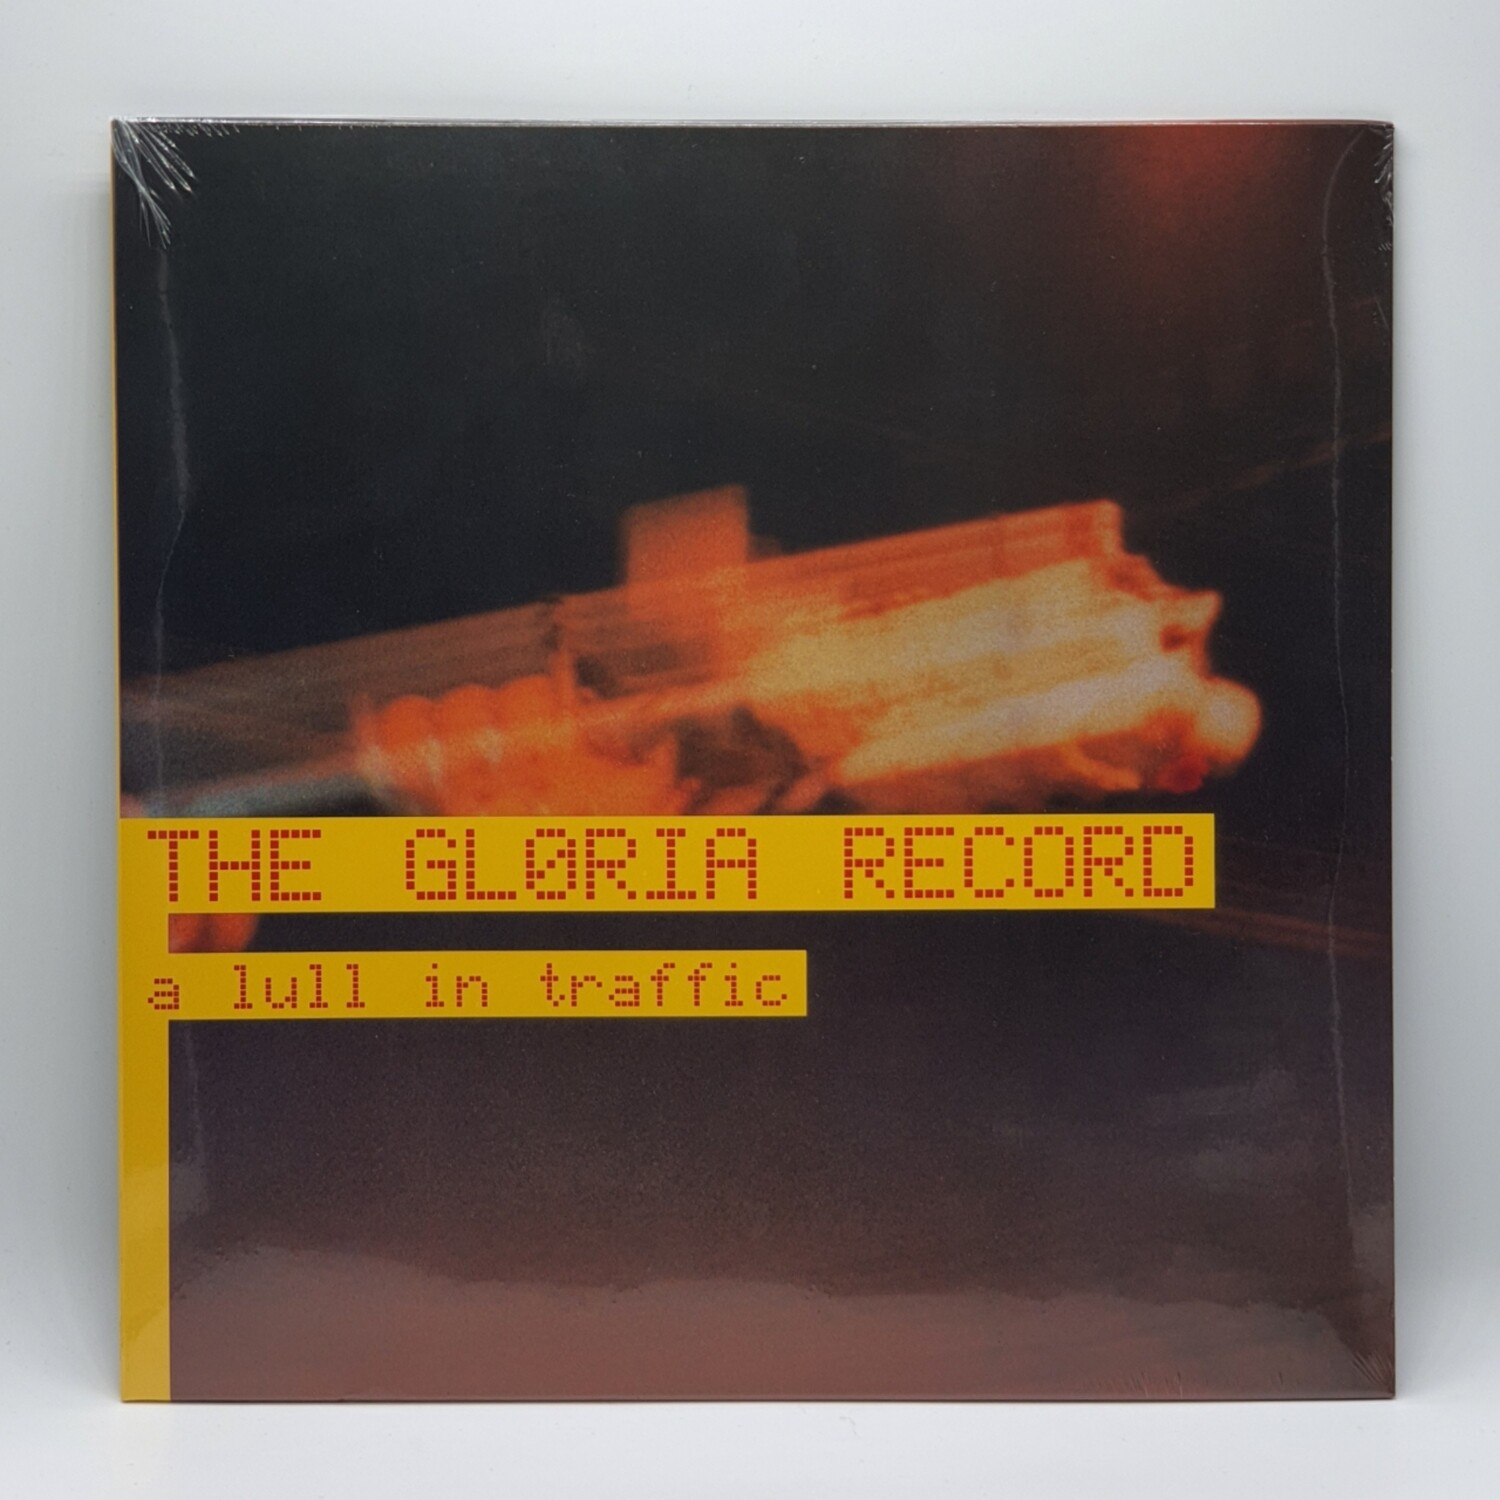 THE GLORIA RECORD -A LULL IN TRAFFIC- 12 INCH VINYL (YELLOW  TRANSPARENT VINYL)